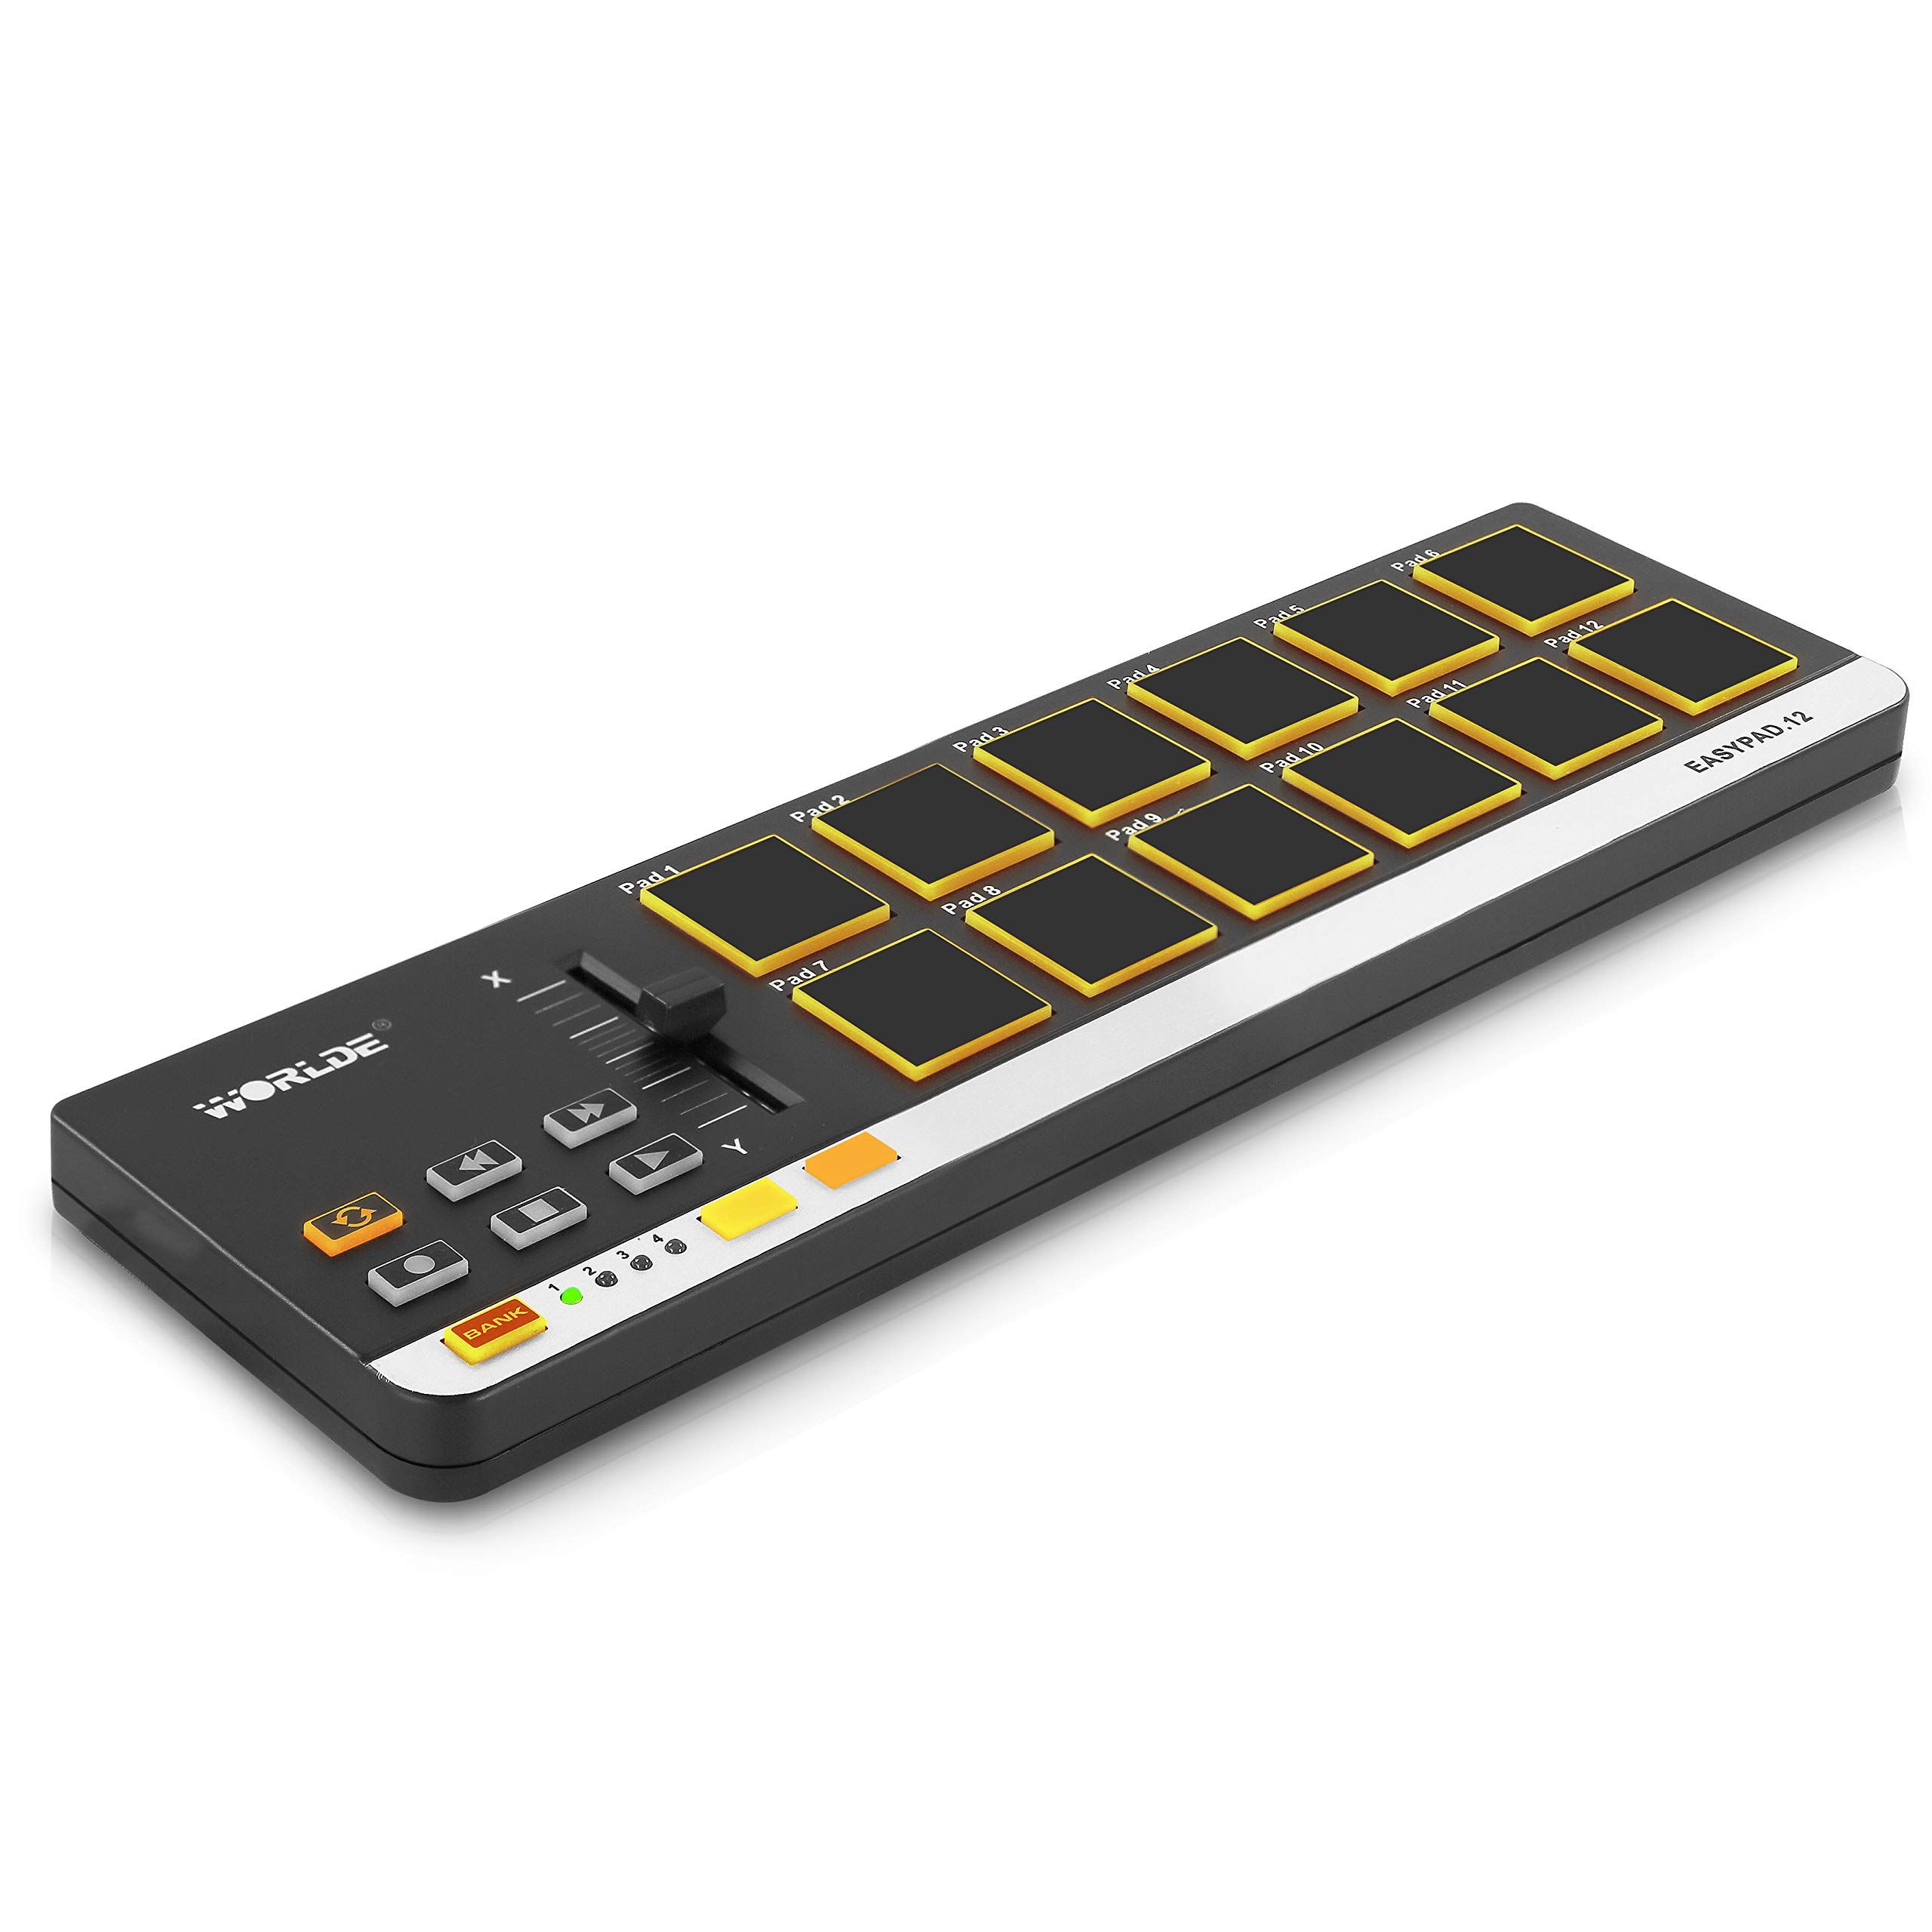 USB MIDI Controller Drum Pad - Mini Portable Beat Maker Workstation Equipment w/ 12 Drum Pads, DJ Fader Slider & Transport Buttons - Control any DAW Software Kit for Laptop Recording - Pyle PMIDIPD20 by Pyle